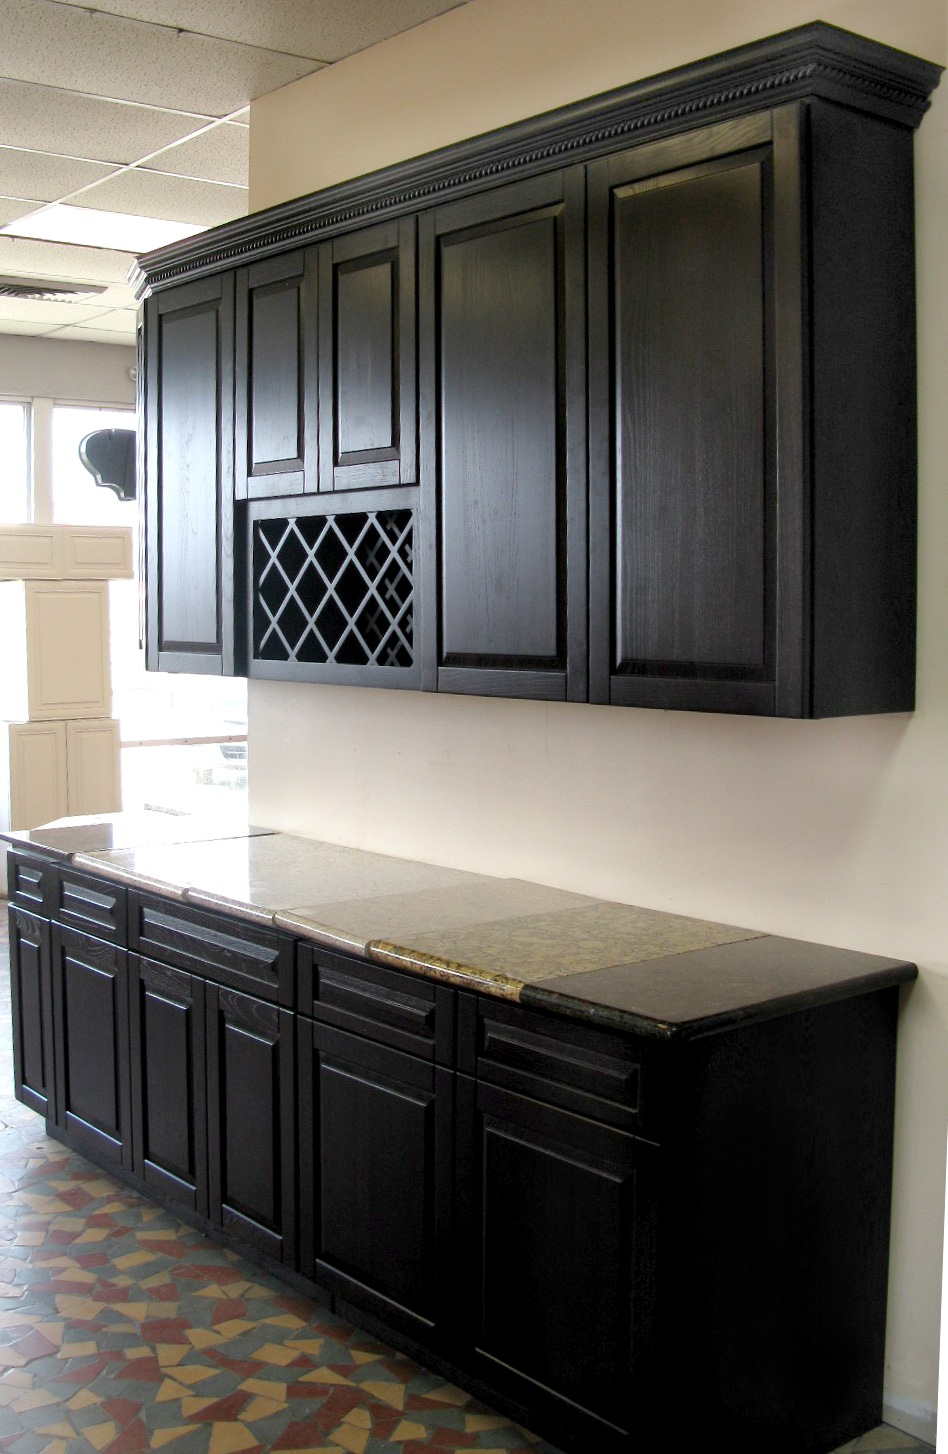 Cabinets for kitchen photos black kitchen cabinets - Black kitchen ideas ...